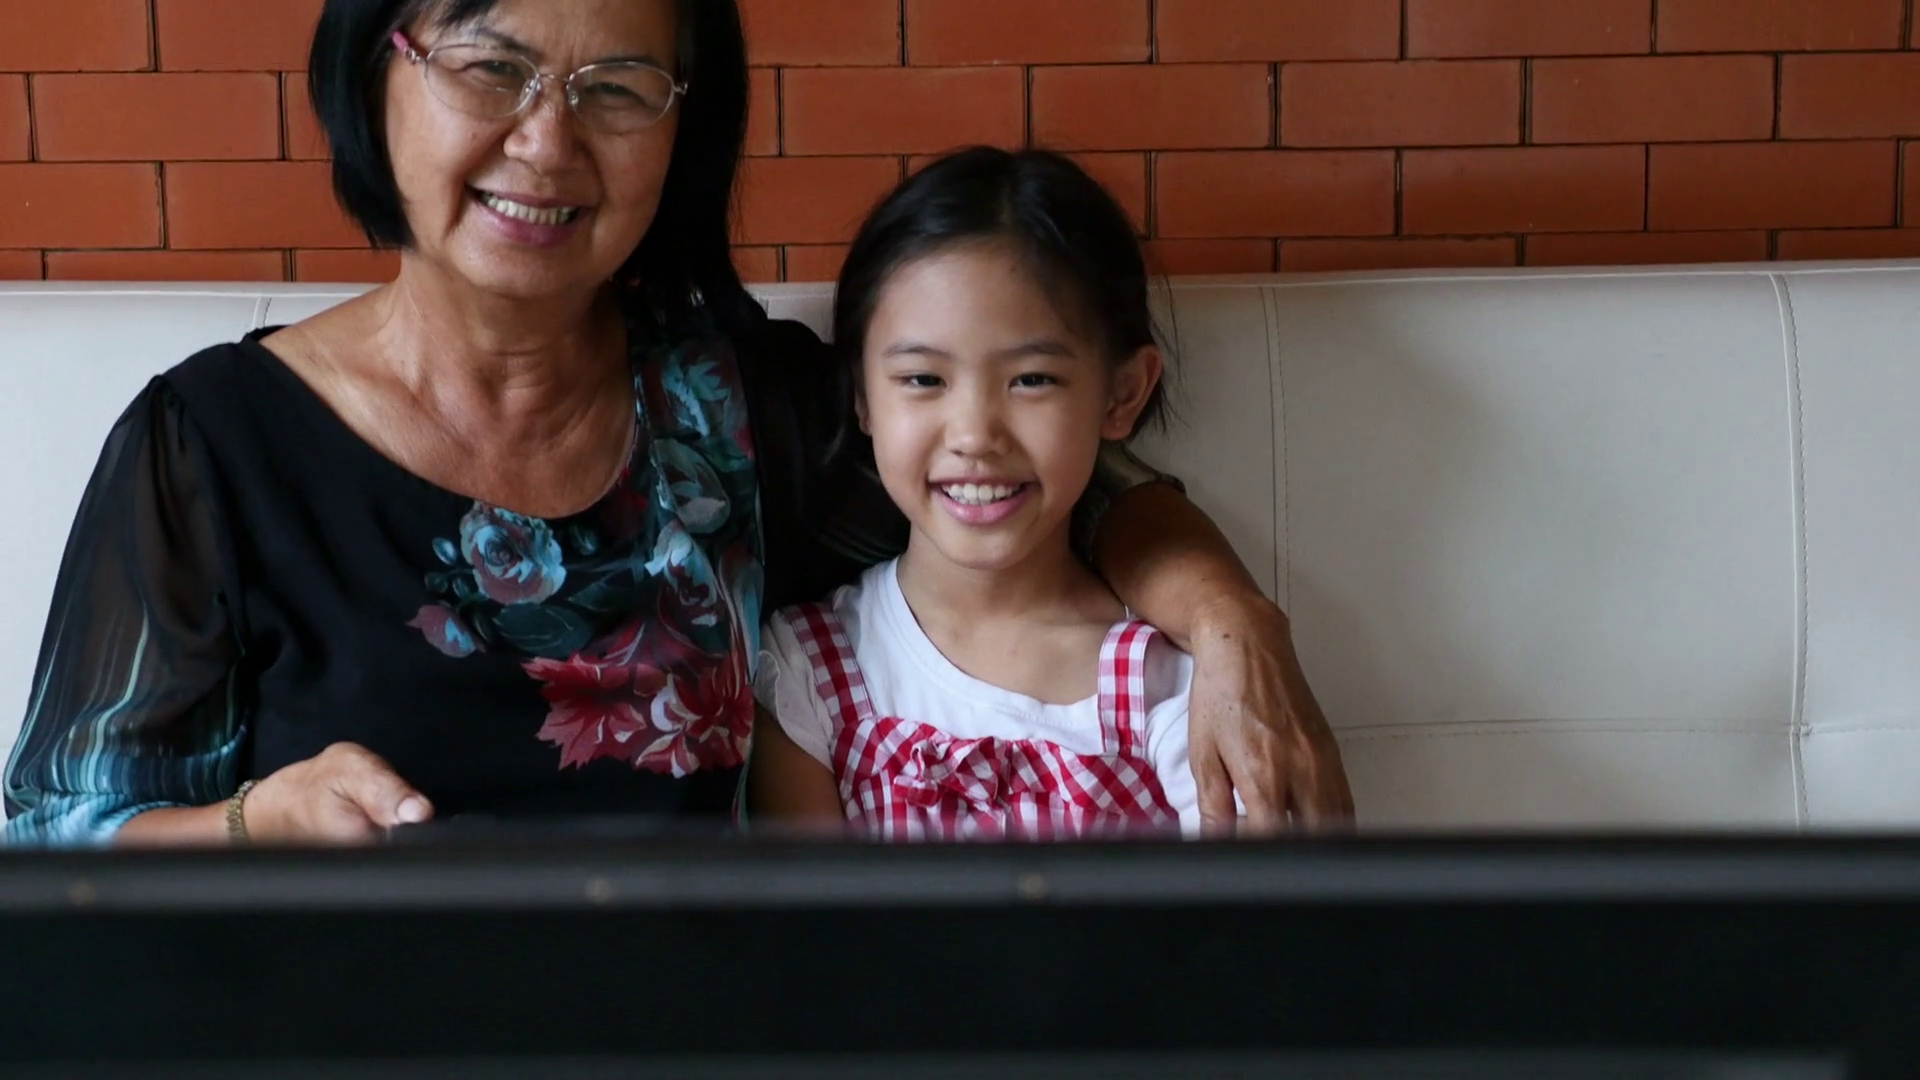 4K : Asian senior woman with little girl watching TV on sofa together, Tilt up shot Stock Video Footage - Storyblocks